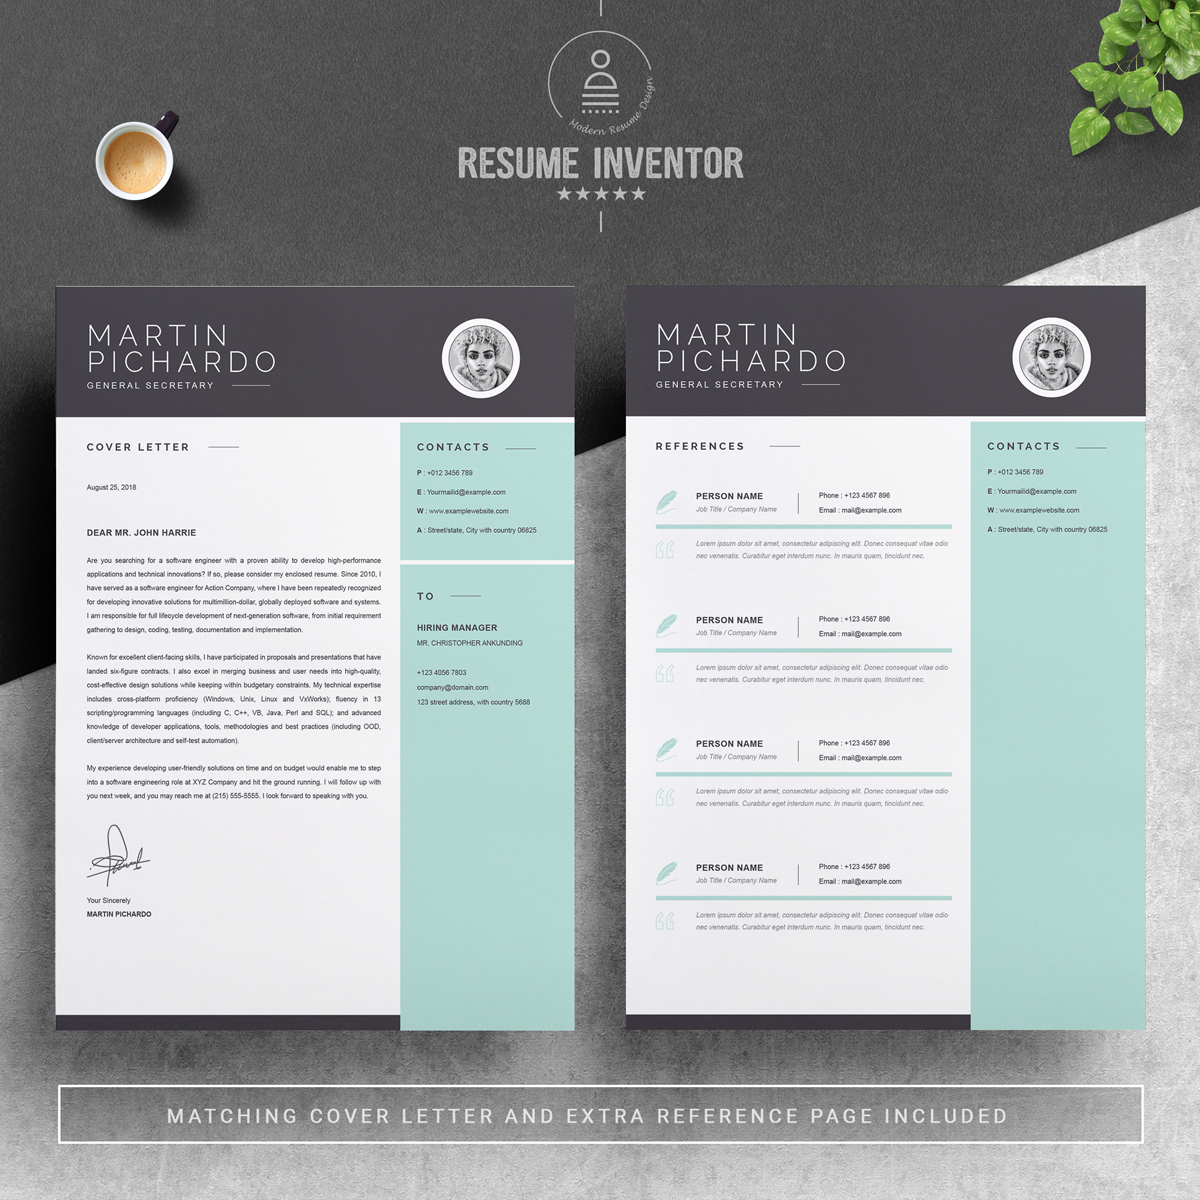 https://s3u.tmimgcdn.com/1860567-1558600379536_03_2-Pages-Free-Resume-Design-Template.jpg